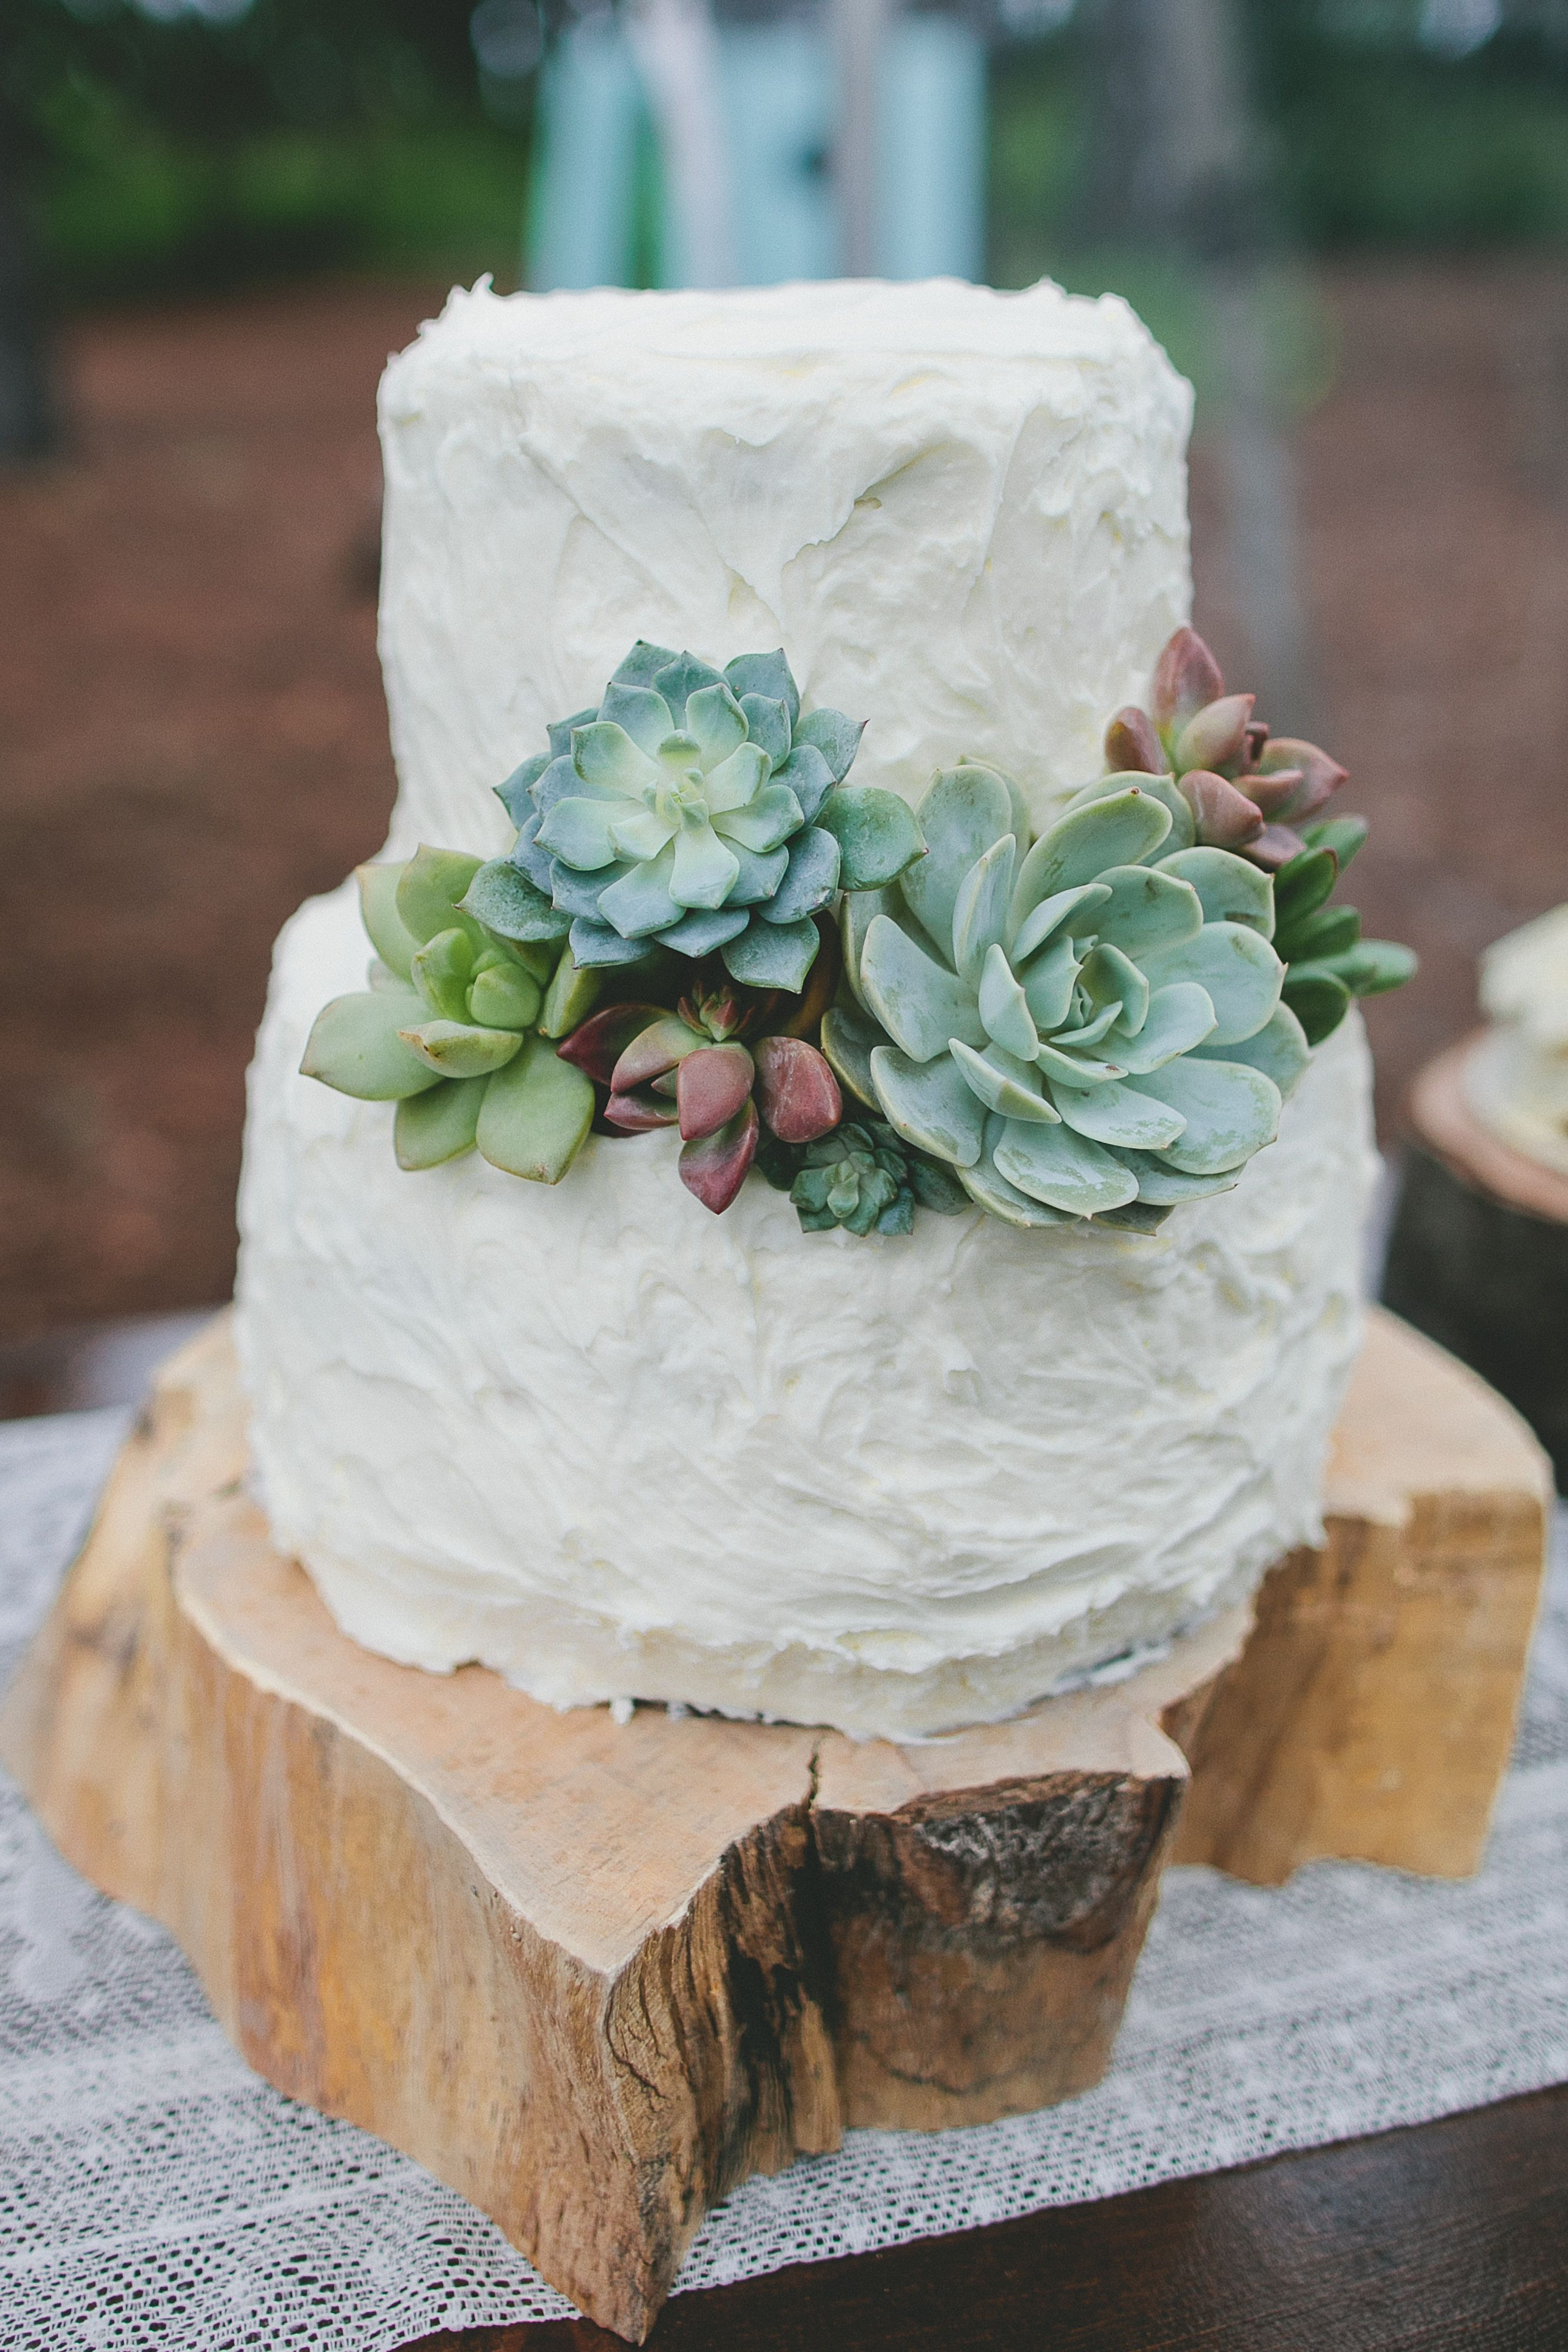 Succulent wedding cake idea   two tier  buttercream frosted wedding     Succulent wedding cake idea   two tier  buttercream frosted wedding cake  with succulents on wood slice  Photo by  andrewjadephoto